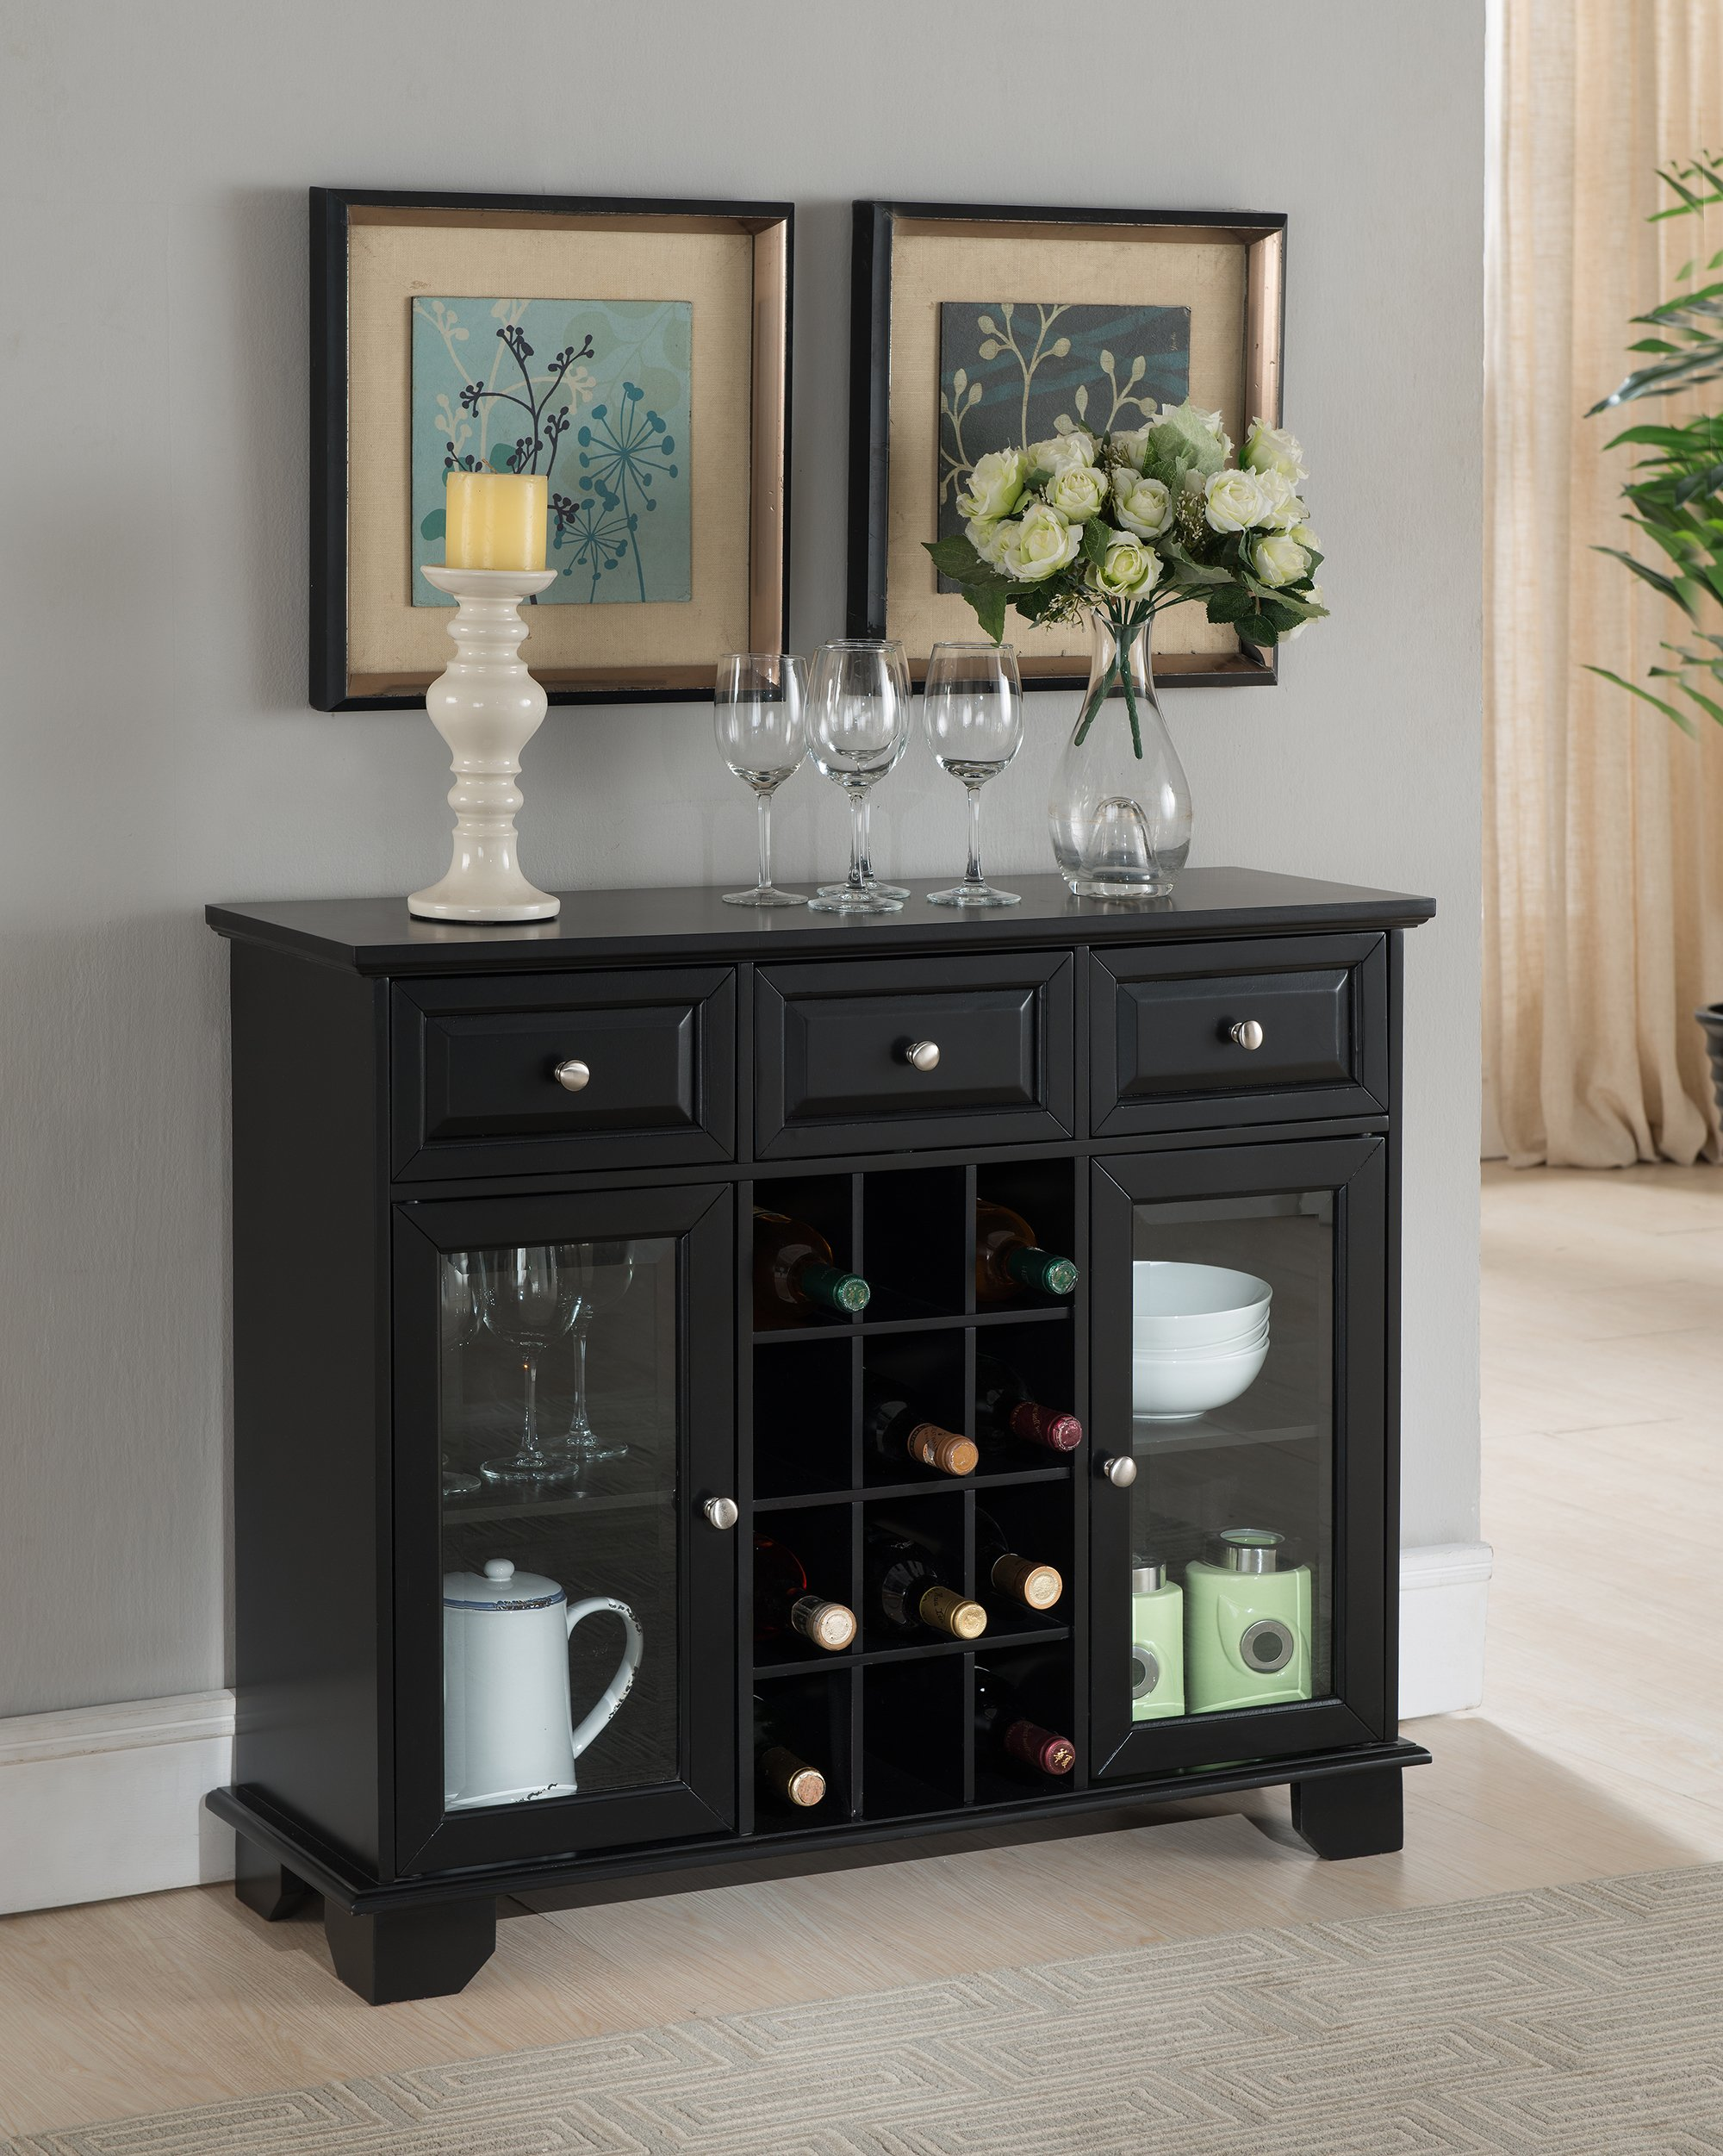 Kings Brand Furniture Buffet Server Sideboard Cabinet with Wine Storage, Black